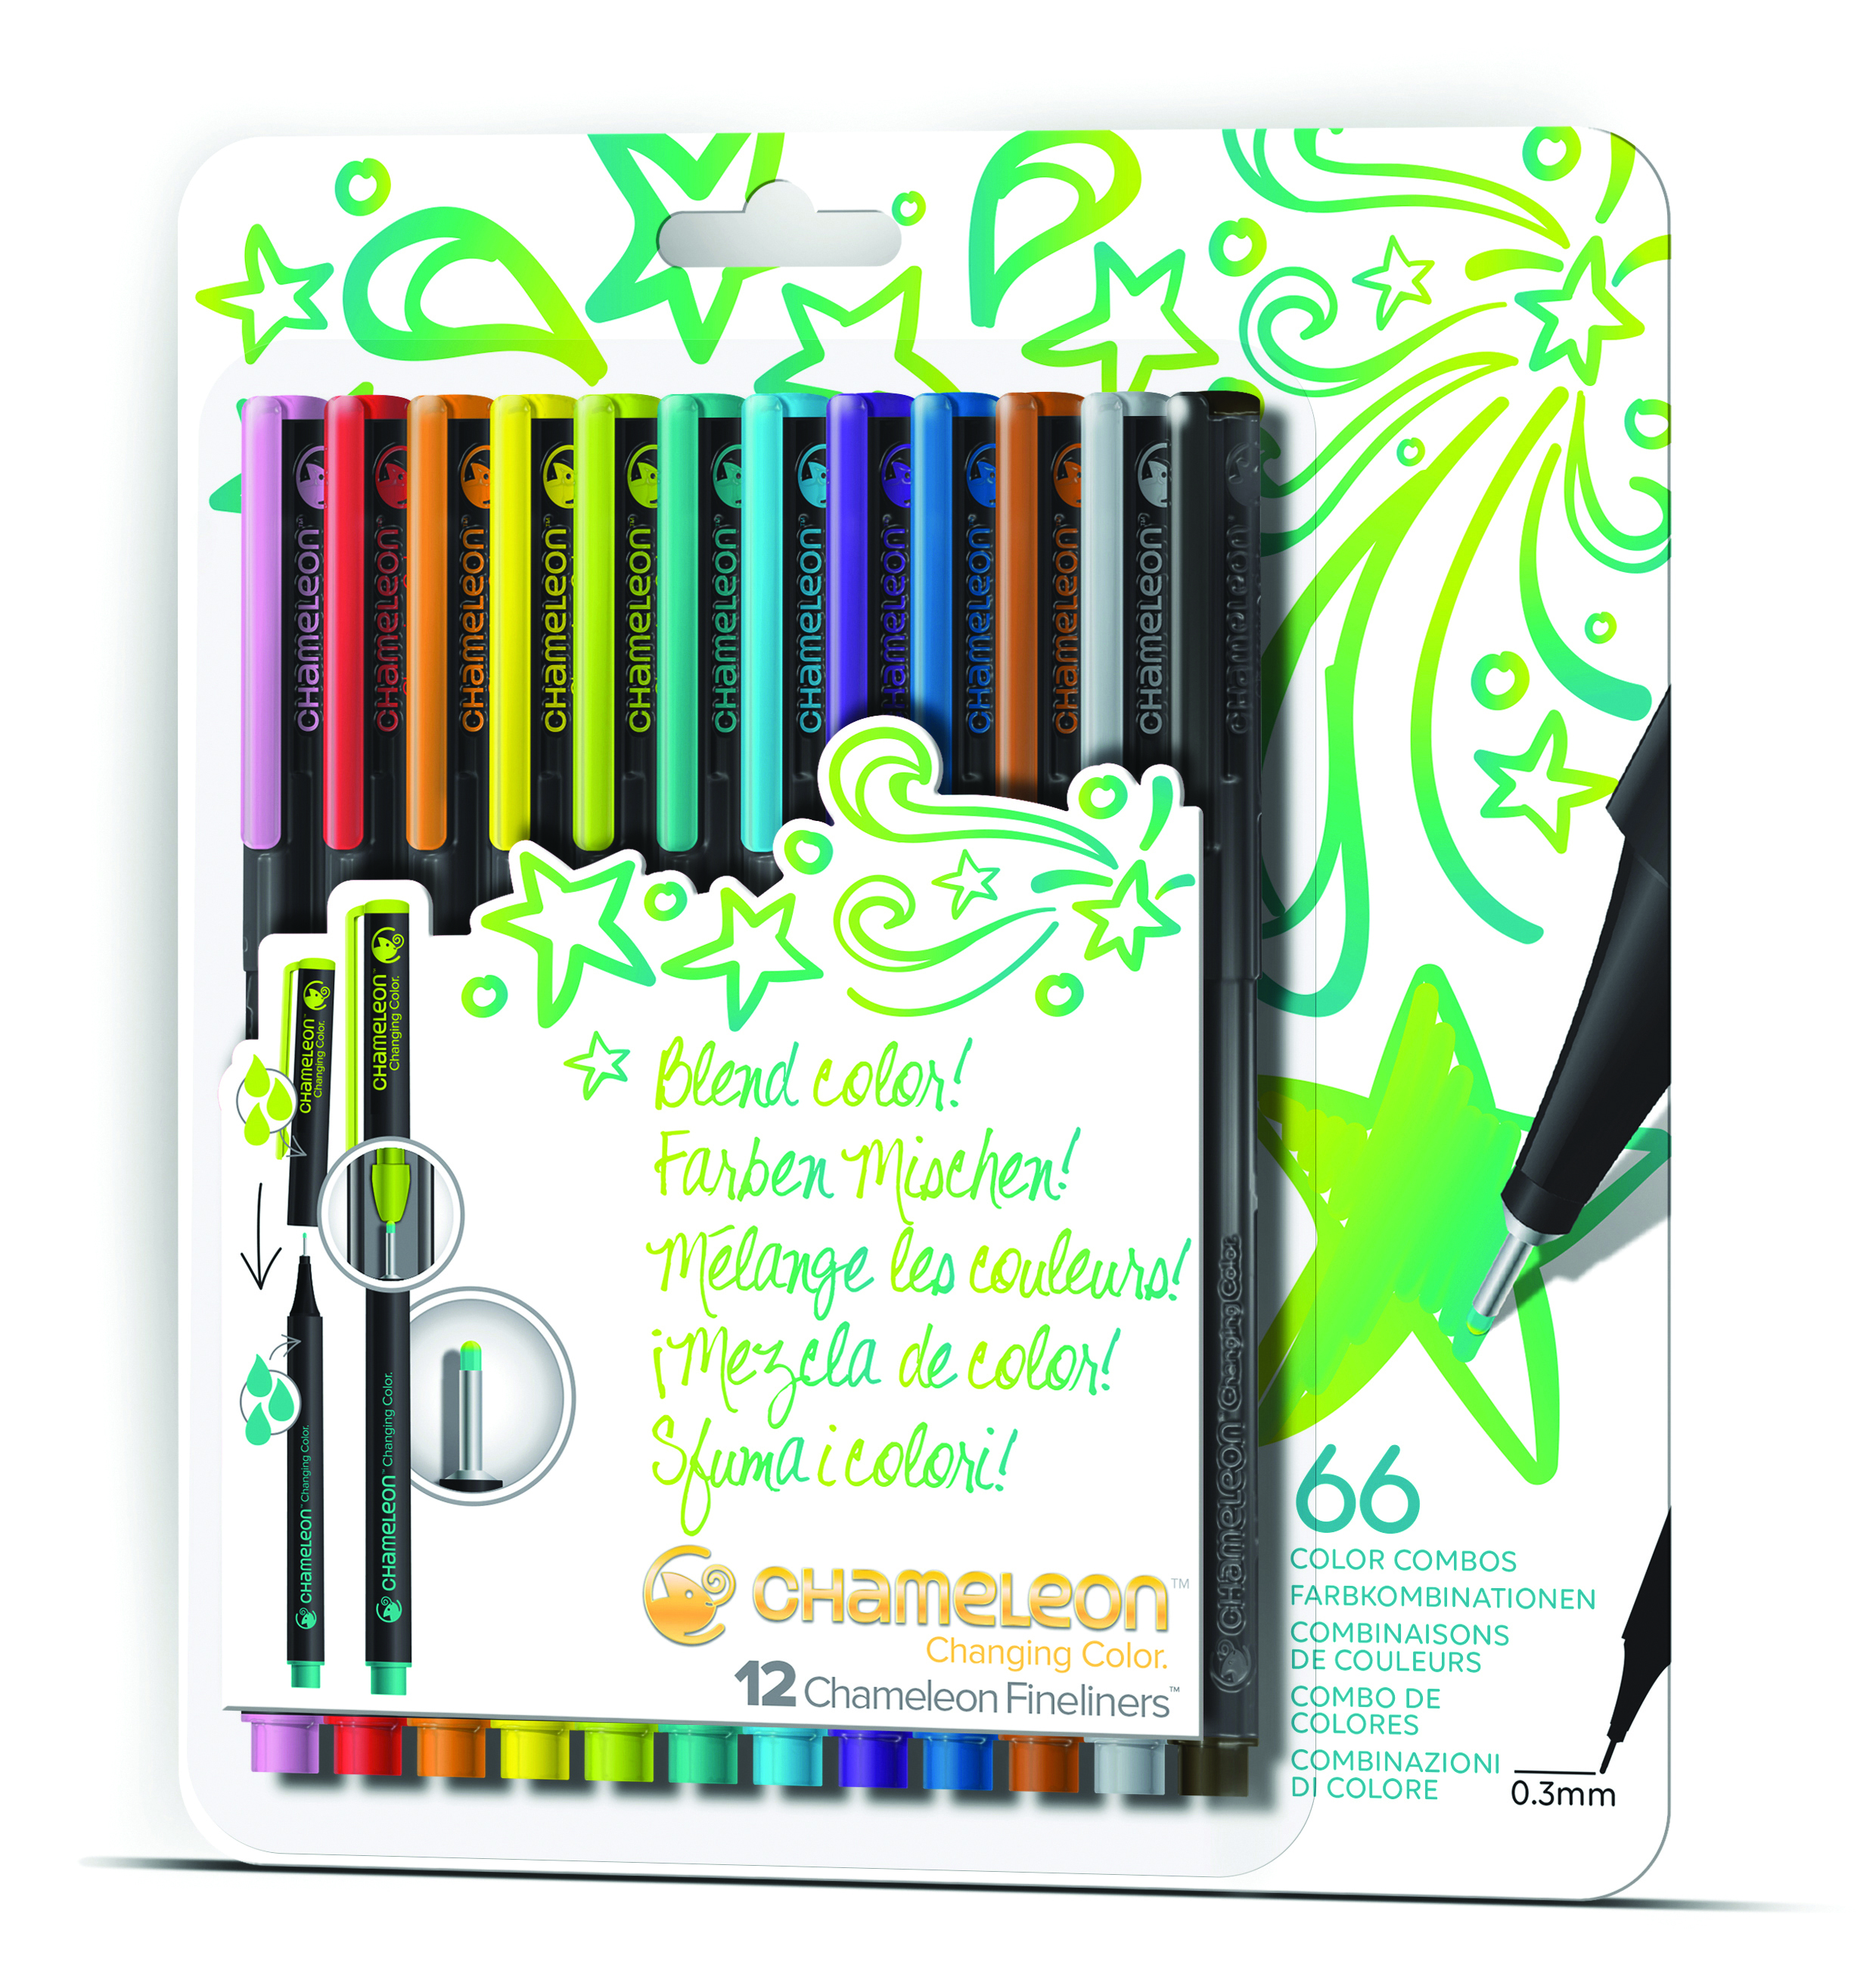 Chameleon Blendwriters 12 pack Bright Colors (カメレオンブレンドライター 12本入りブライトセット)